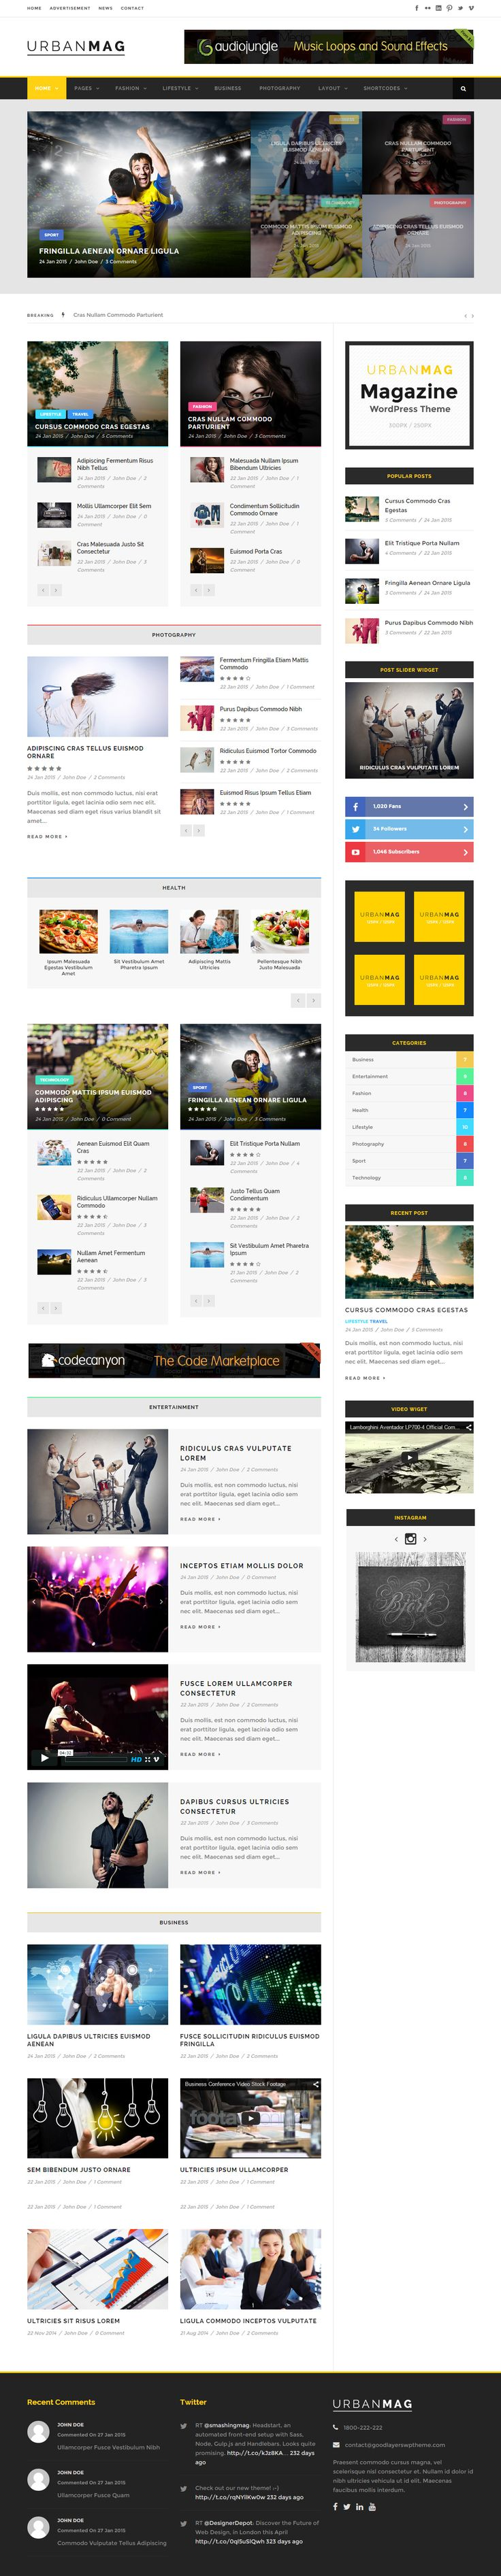 Urban Mag is Premium full Responsive Retina WordPress Magazine Theme. WooCommerce. Mega Menu. Parallax Scrolling. Drag & Drop. http://www.responsivemiracle.com/cms/urban-mag-premium-responsive-news-magazine-wordpress-theme/